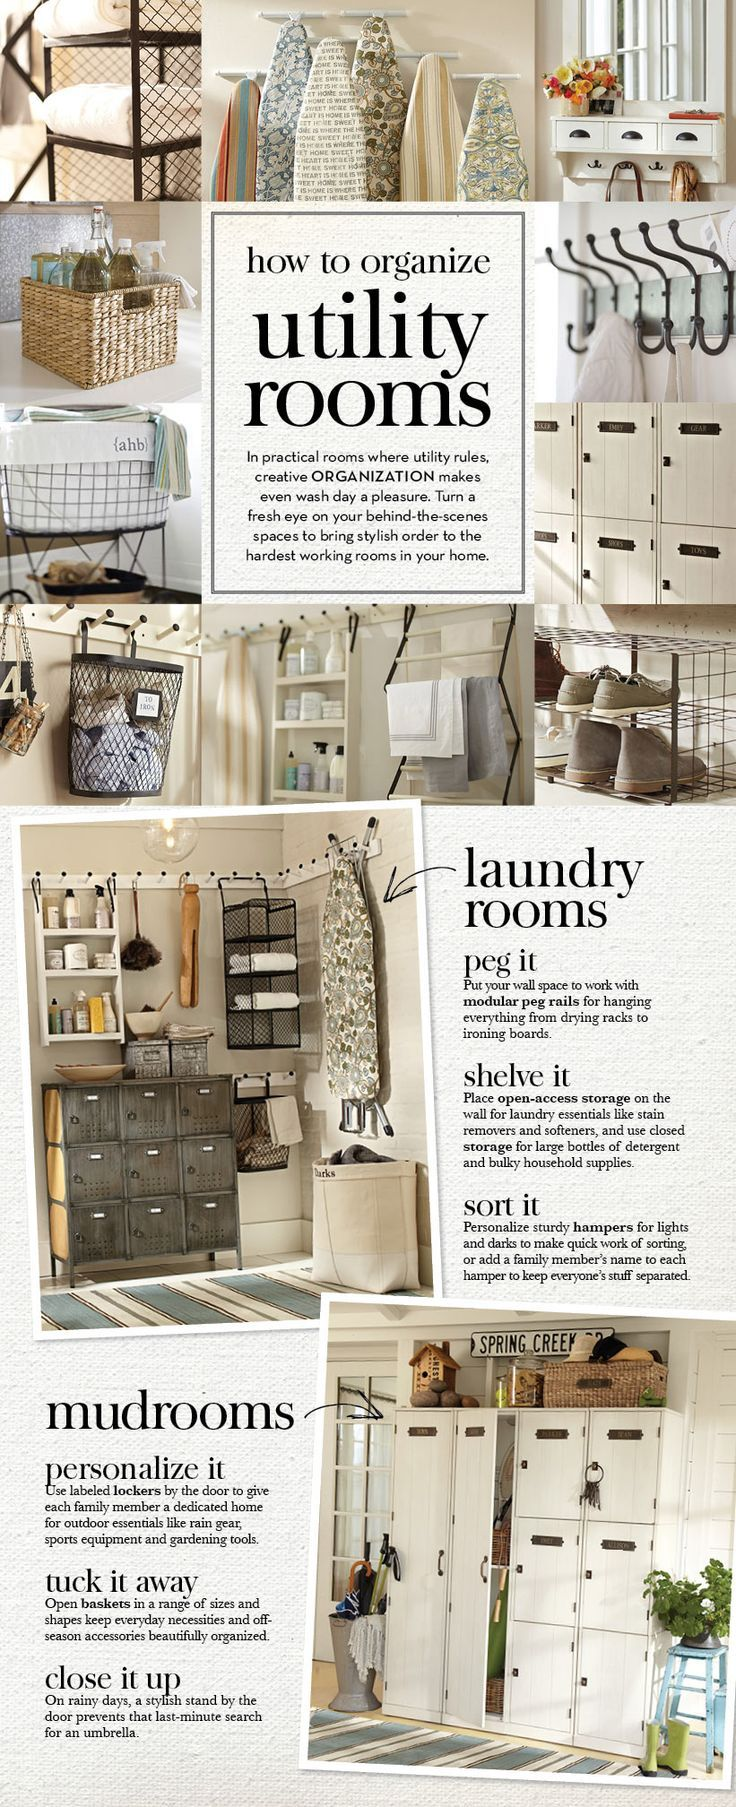 Laundry room..... How to Organize Utility Rooms with tips from Pottery Barn